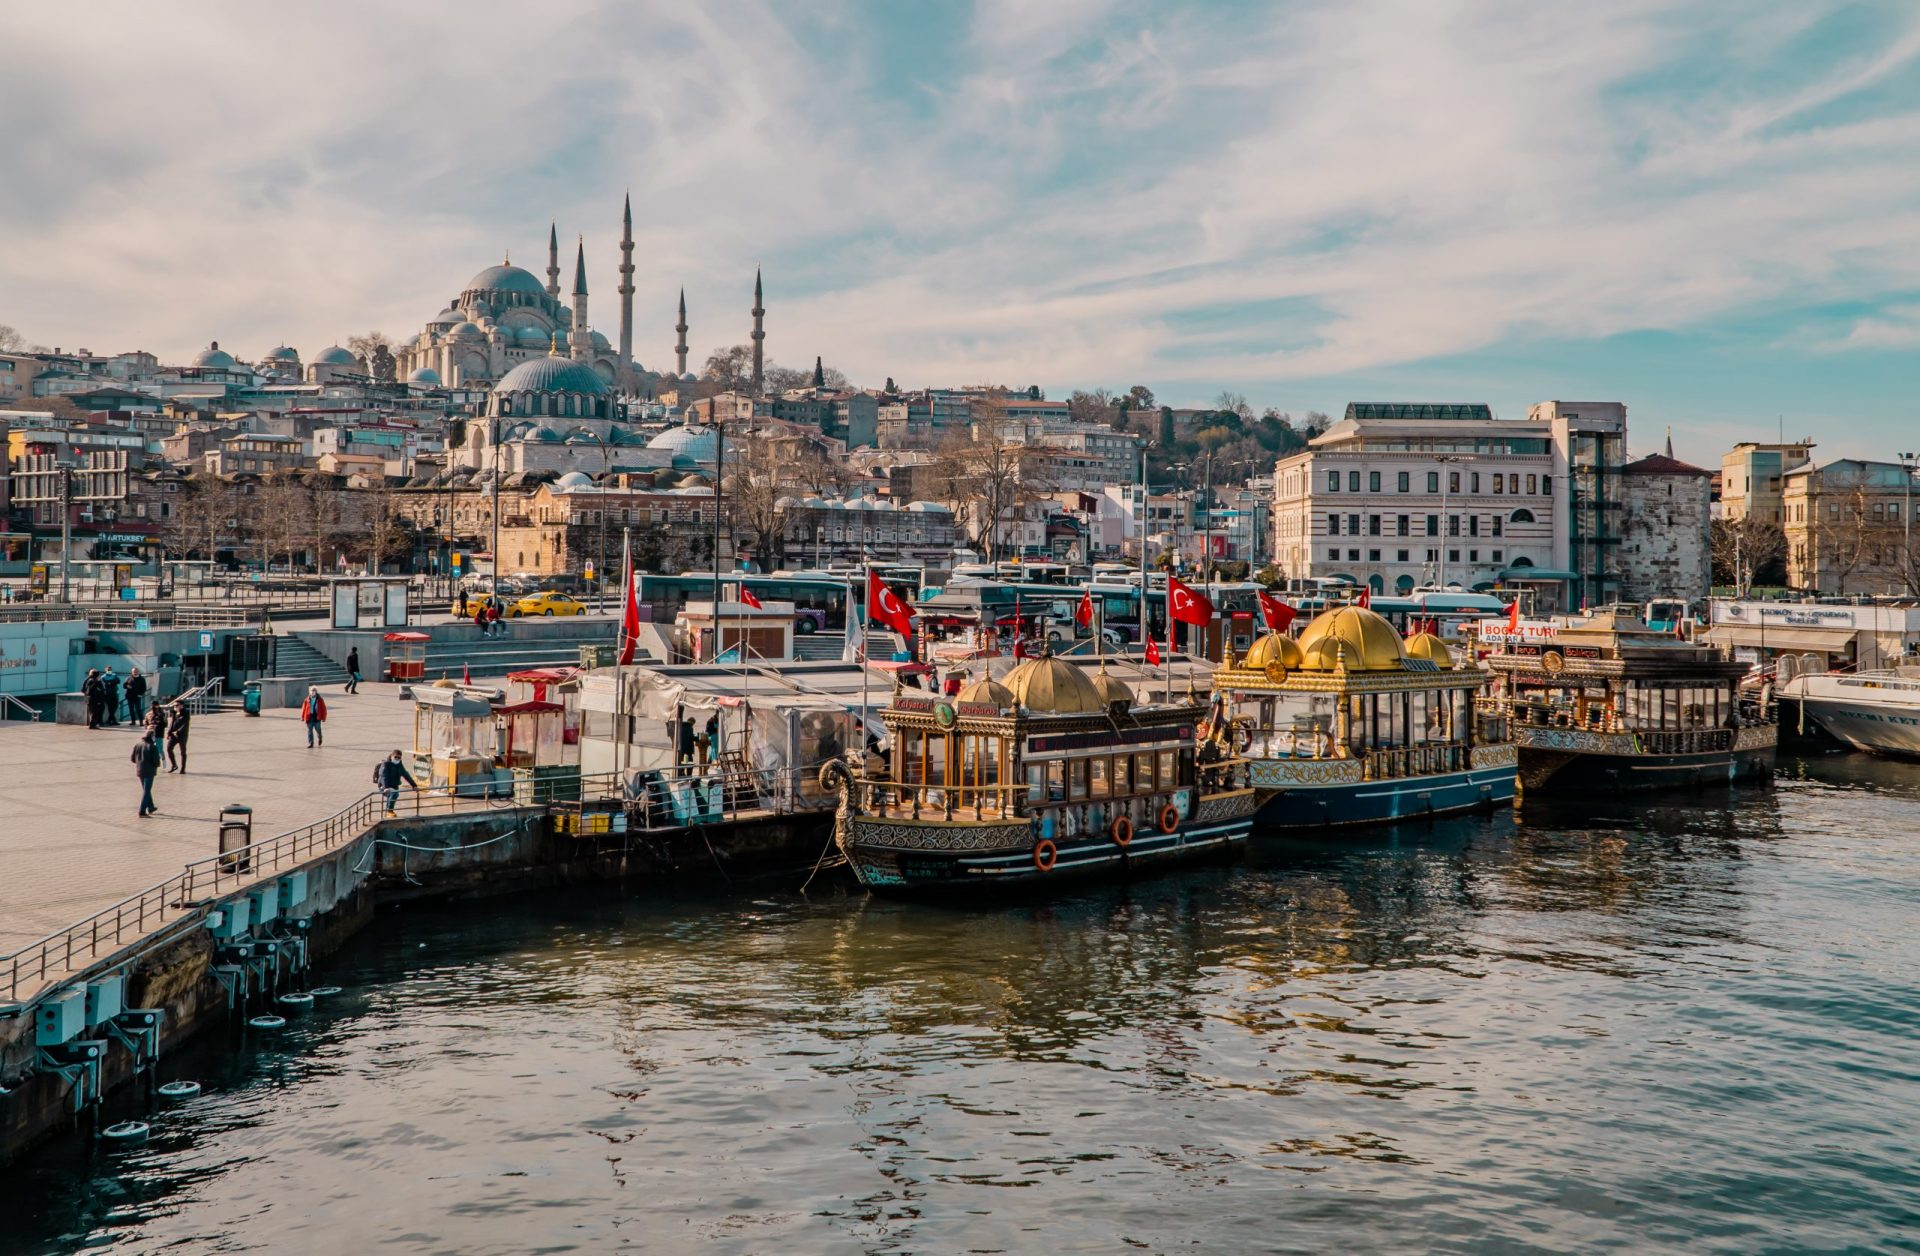 A Comprehensive Guide to Istanbul for Digital Nomads - featured image - the docks at Eminönü with Suleymaniye Mosque in the background